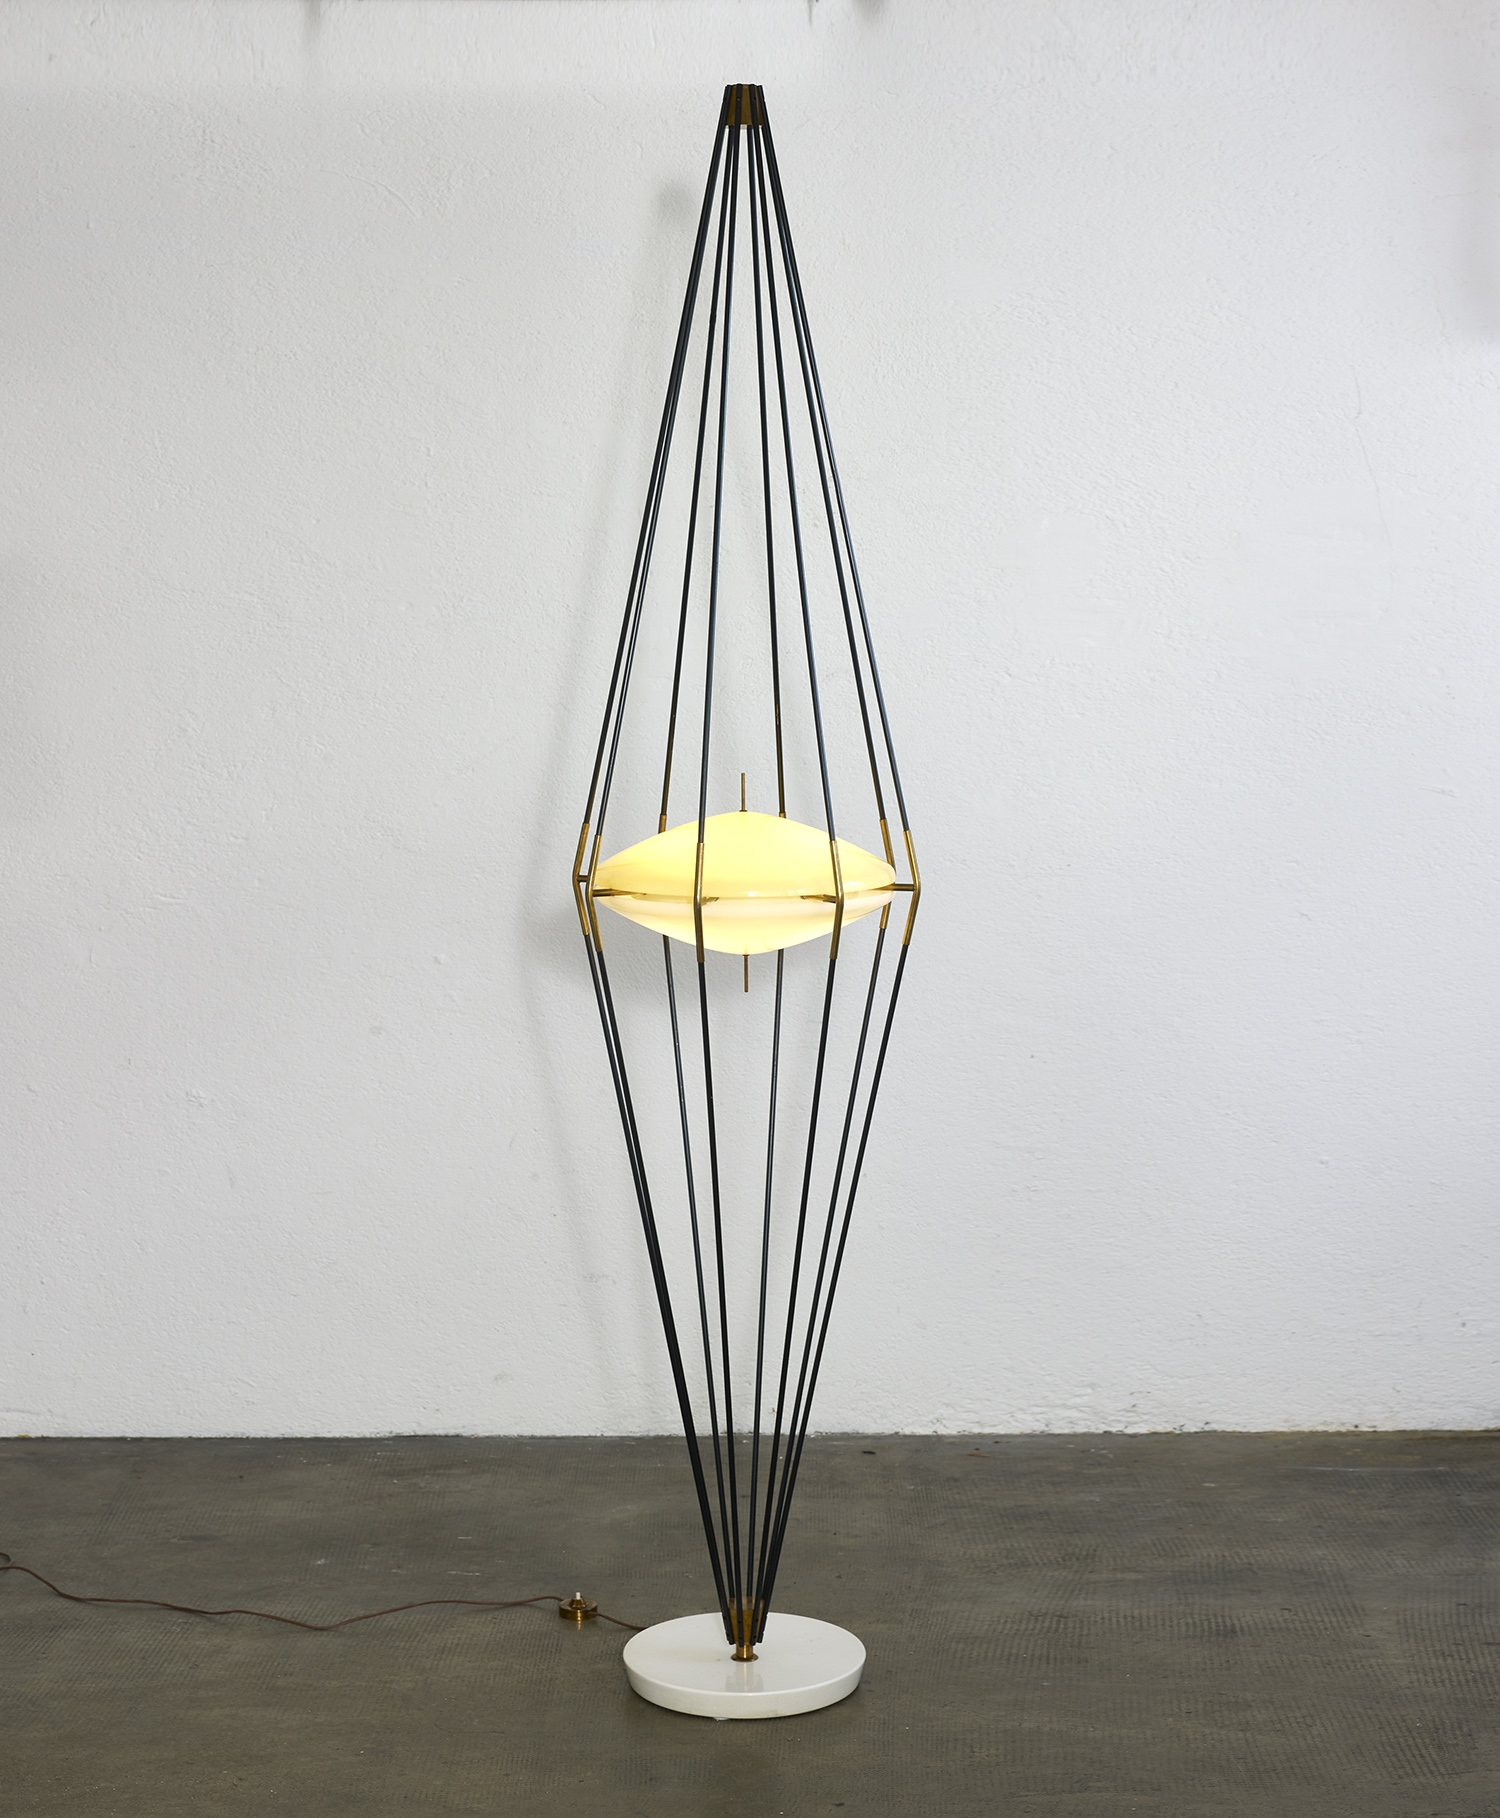 rare-model-12628-siluro-floor-lamp-by-angelo-lelii-for-arredoluce-1957-image-01